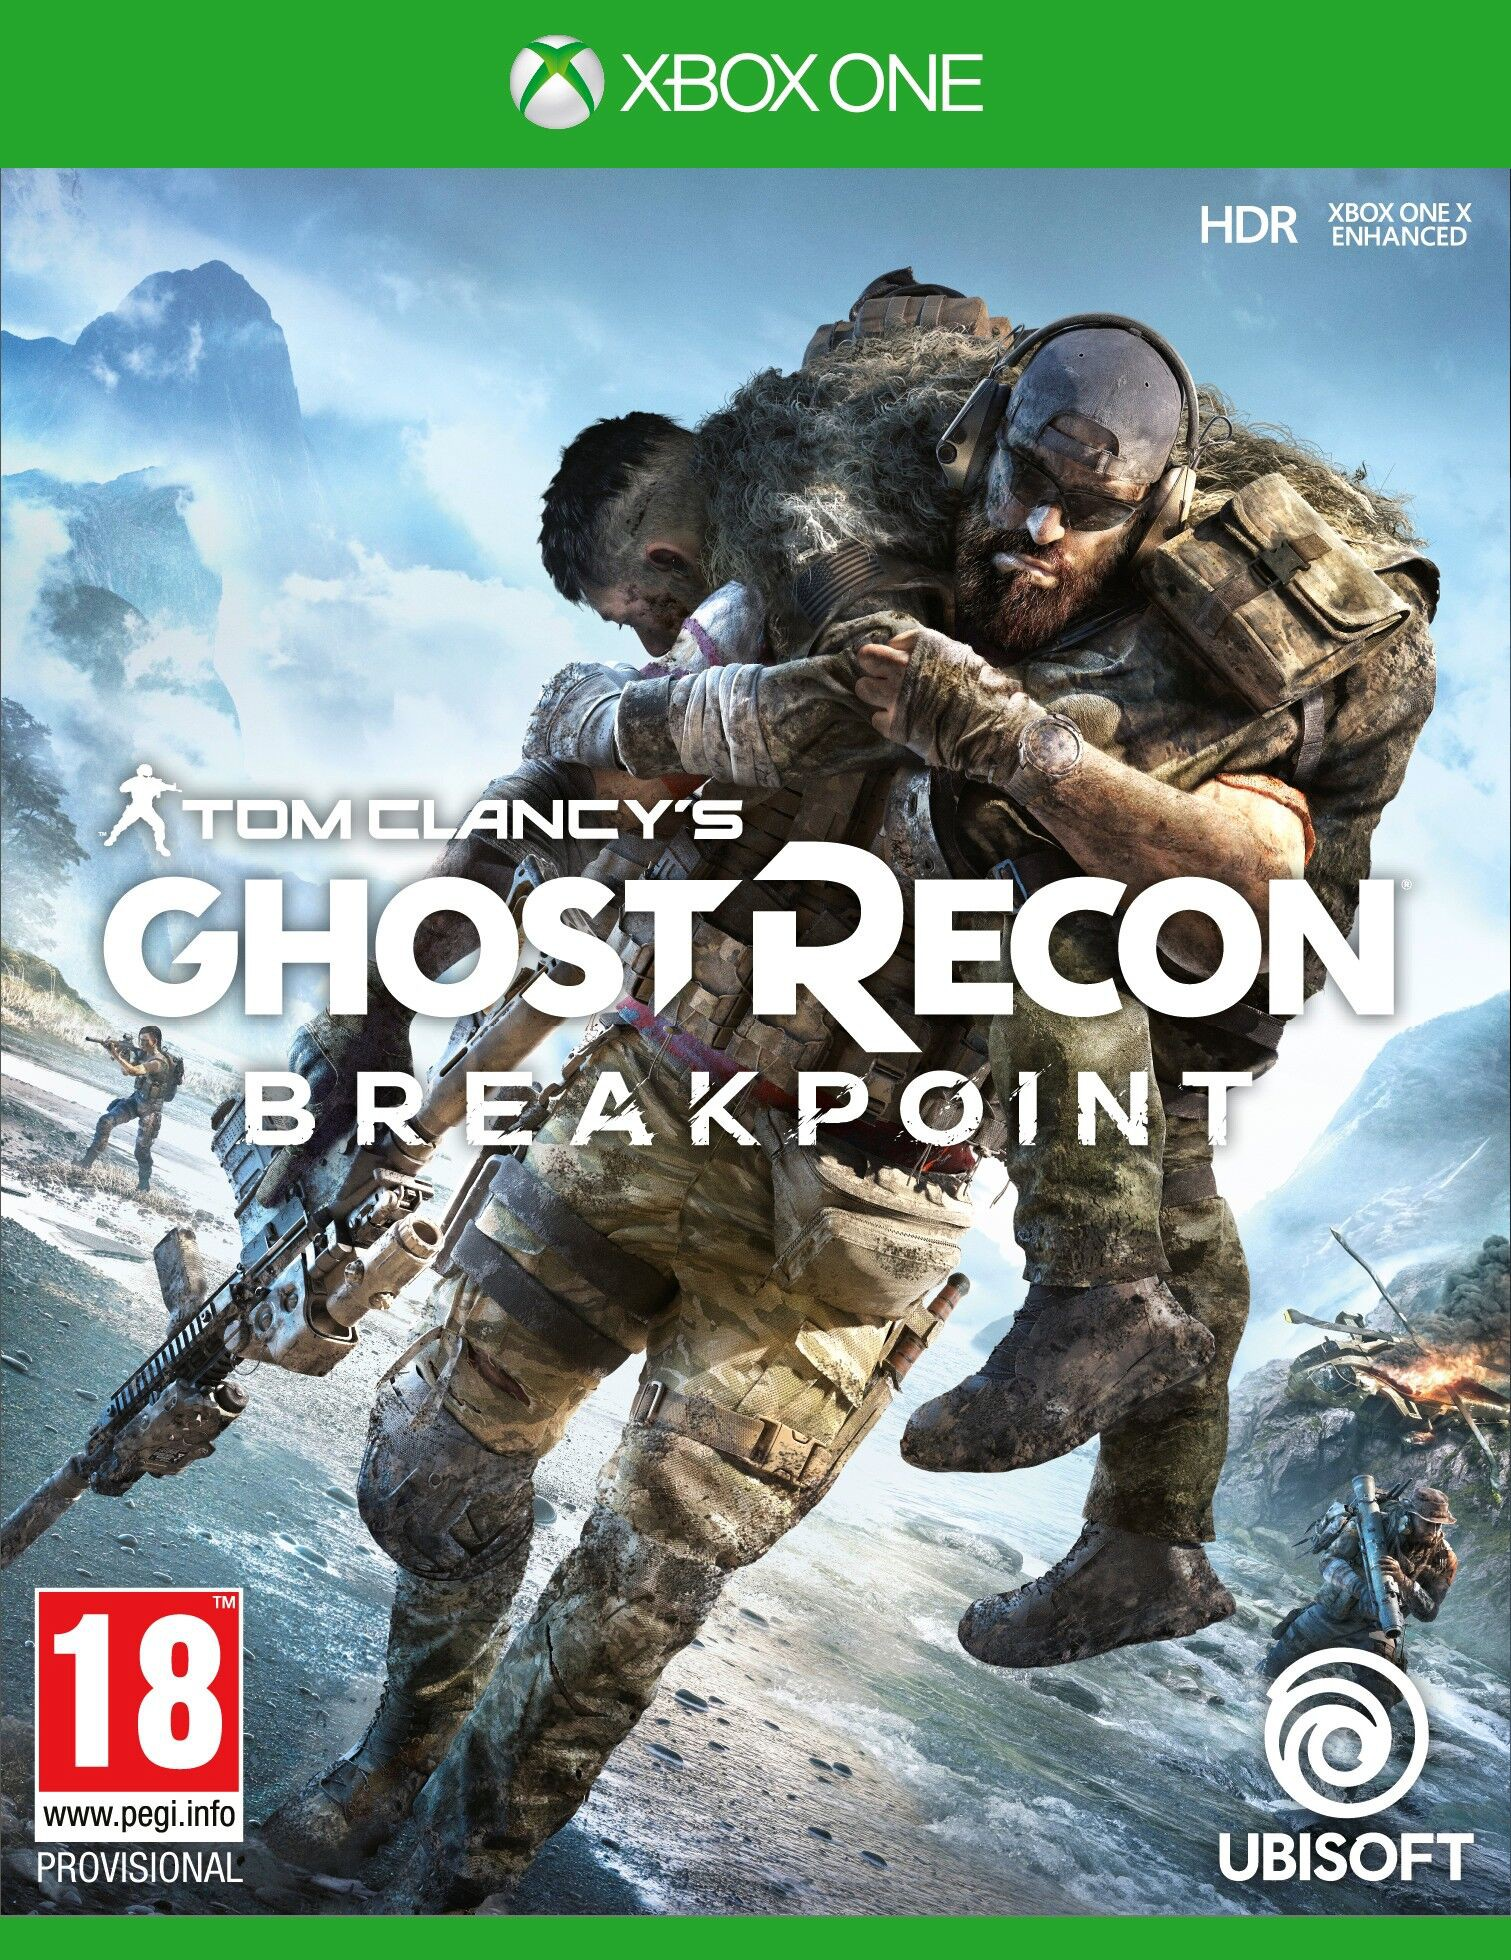 Tom Clancy's Ghost Recon Breakpoint